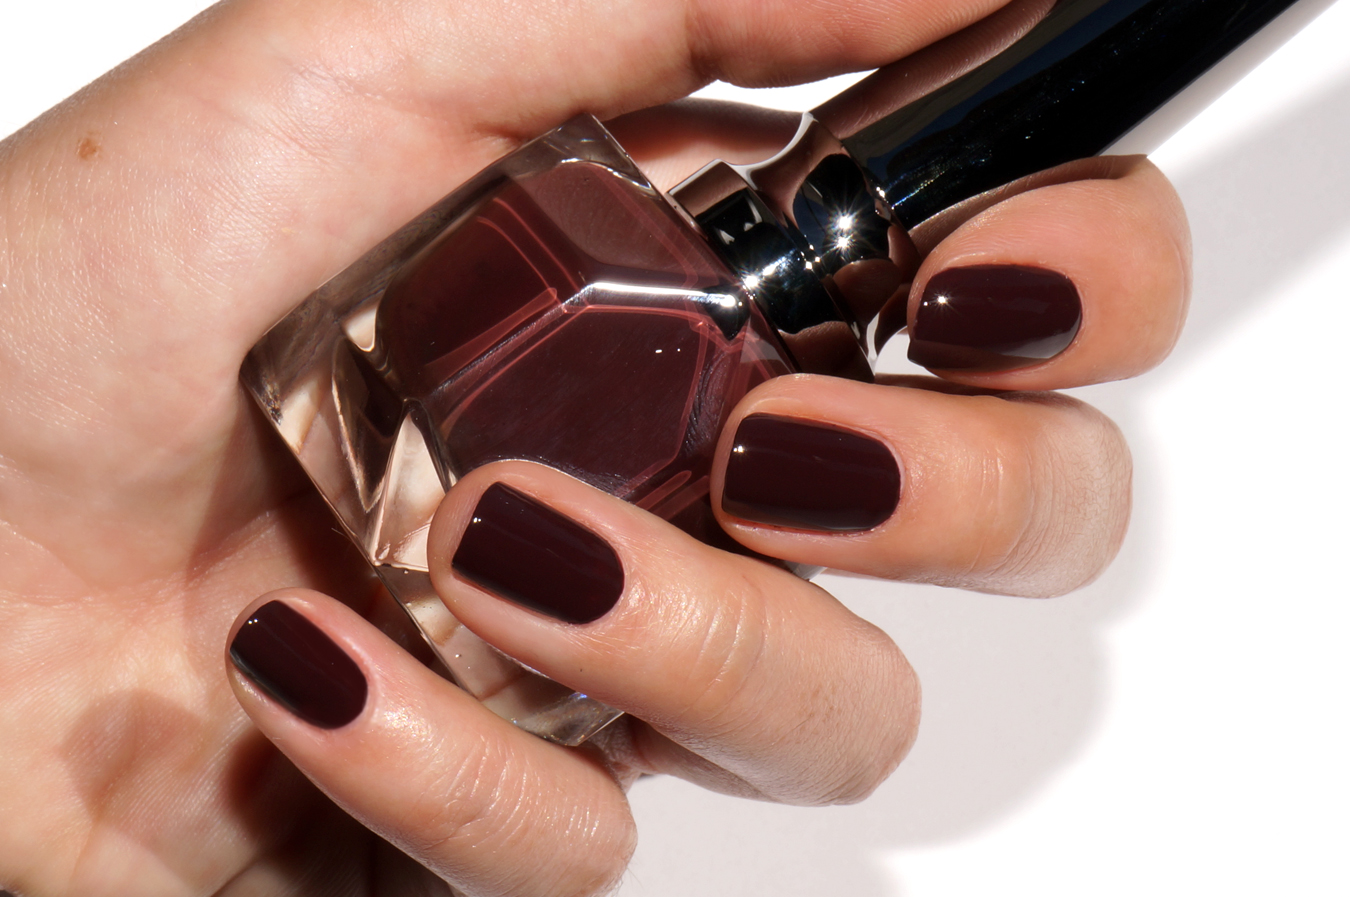 buy popular 560cd ffaa7 Christian Louboutin The Noirs Nail Colors for Fall 2016 ...